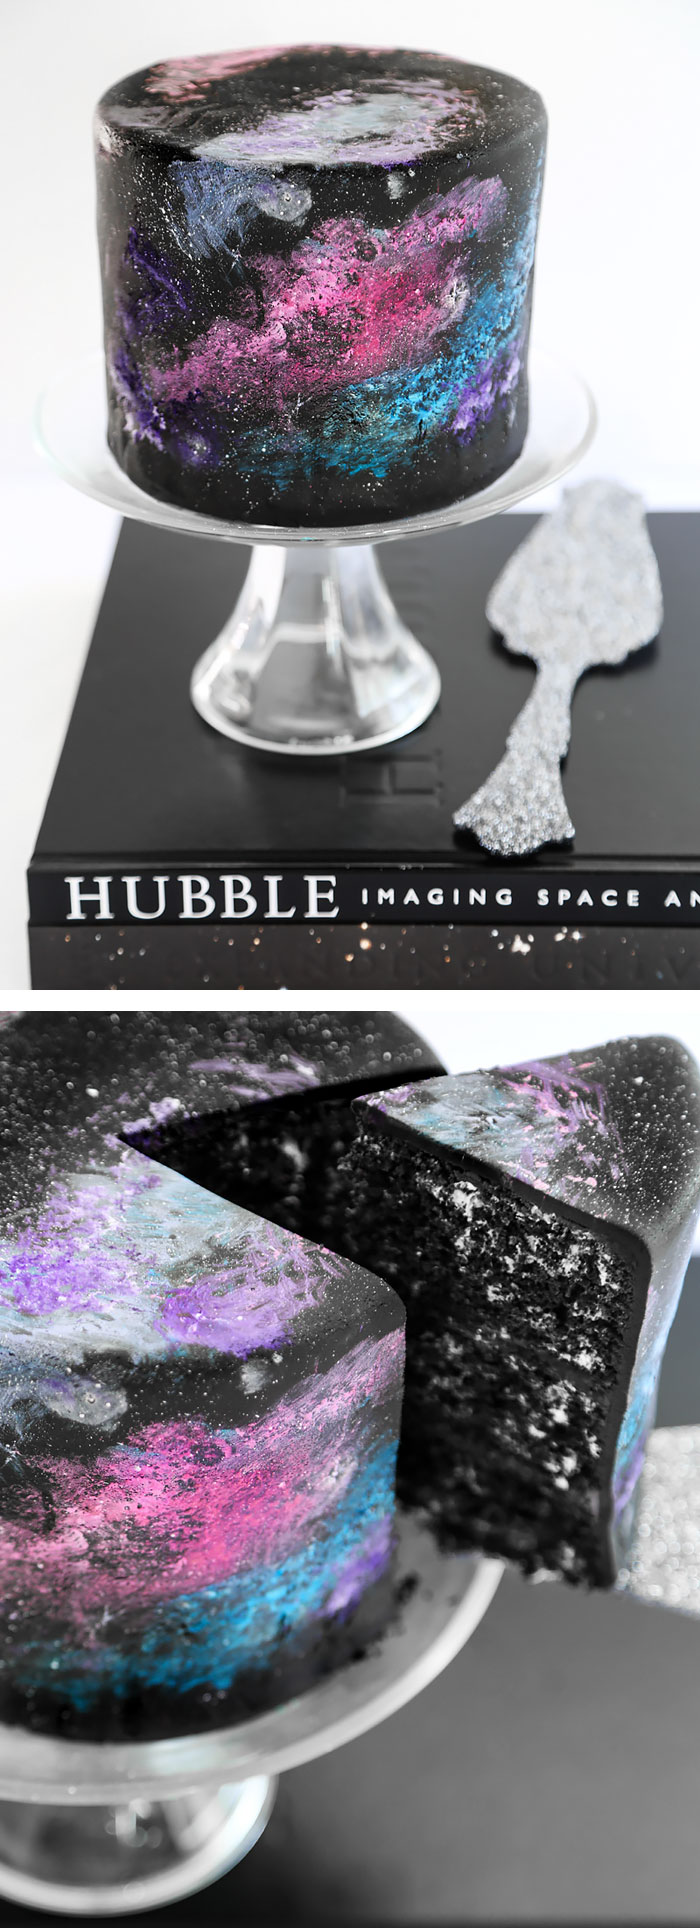 AD-Galaxy-Cakes-Space-Sweets-Nebula-Cosmos-Universe-02